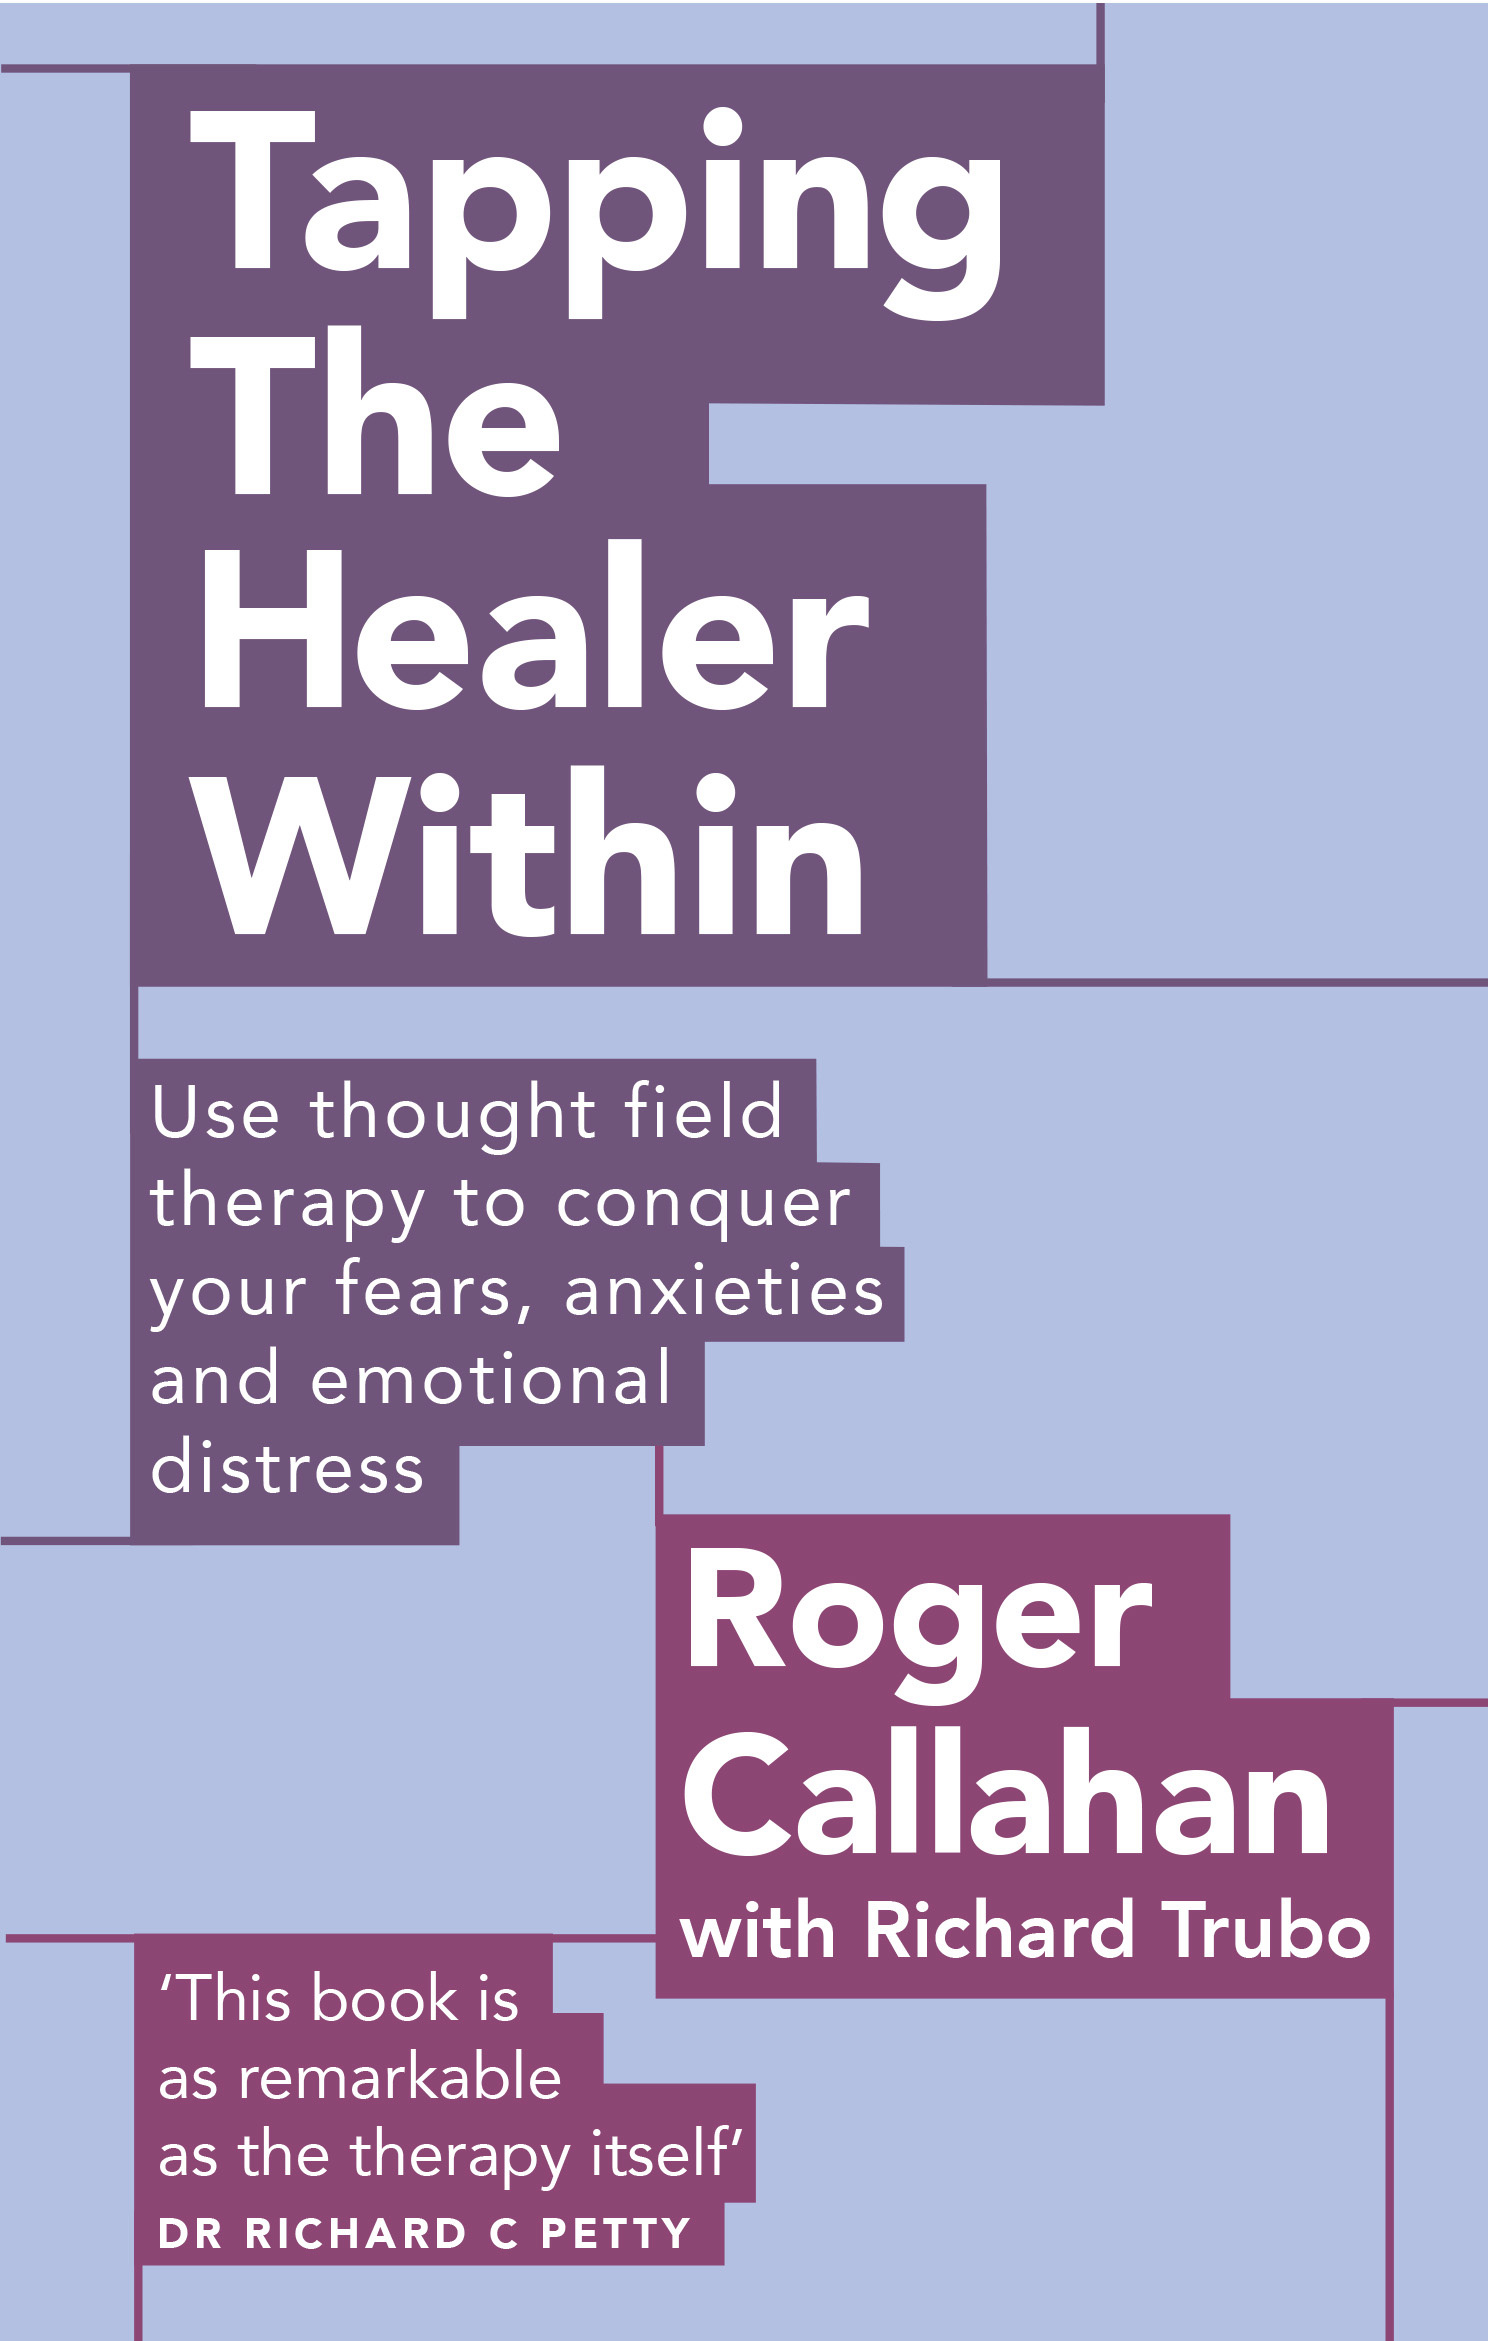 tapping the healer within callahan roger trubo richard